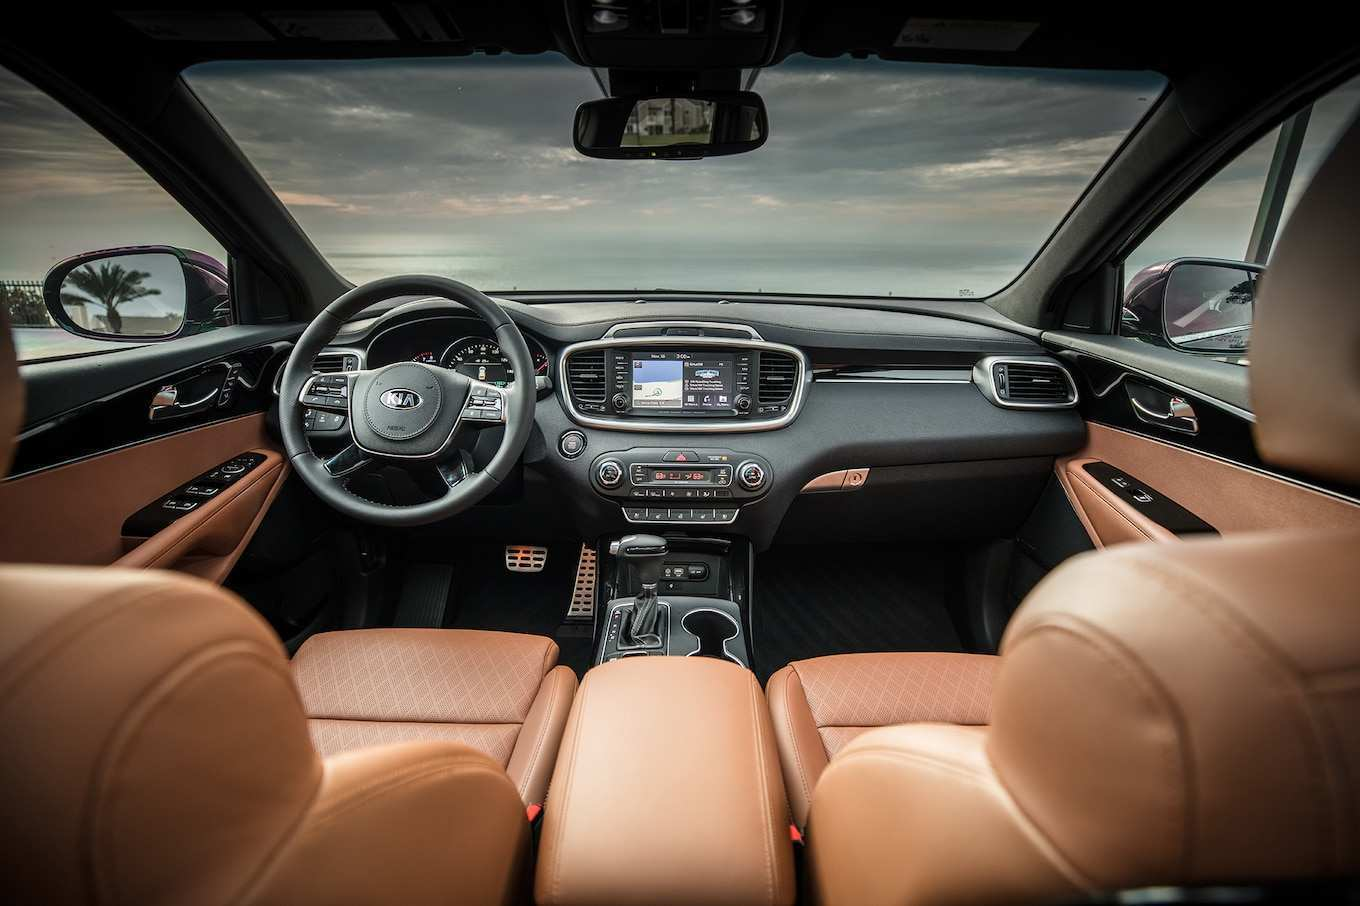 84 Best 2019 Kia Sorento Owners Manual Images